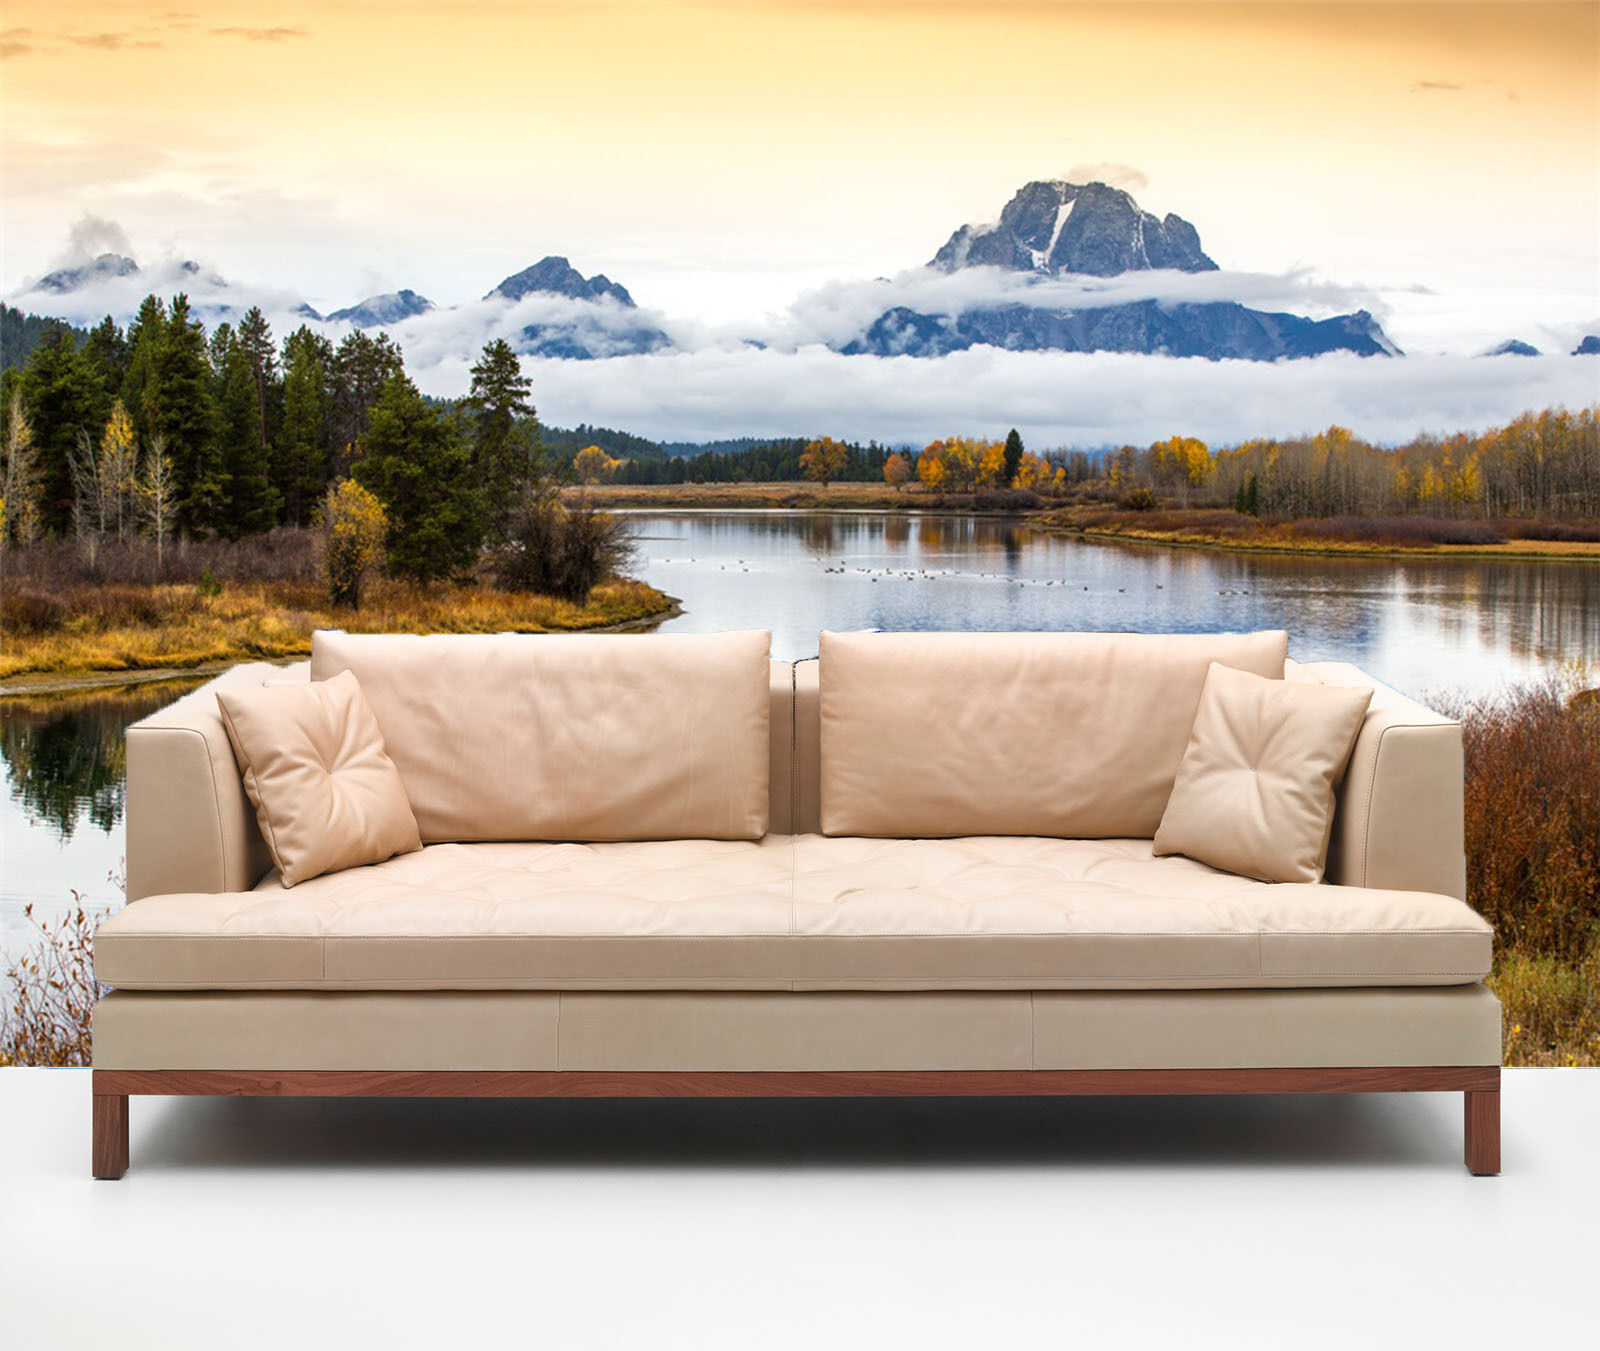 3D Snow and lake 3676 Wall Paper Print Wall Decal Deco Indoor Wall Murals